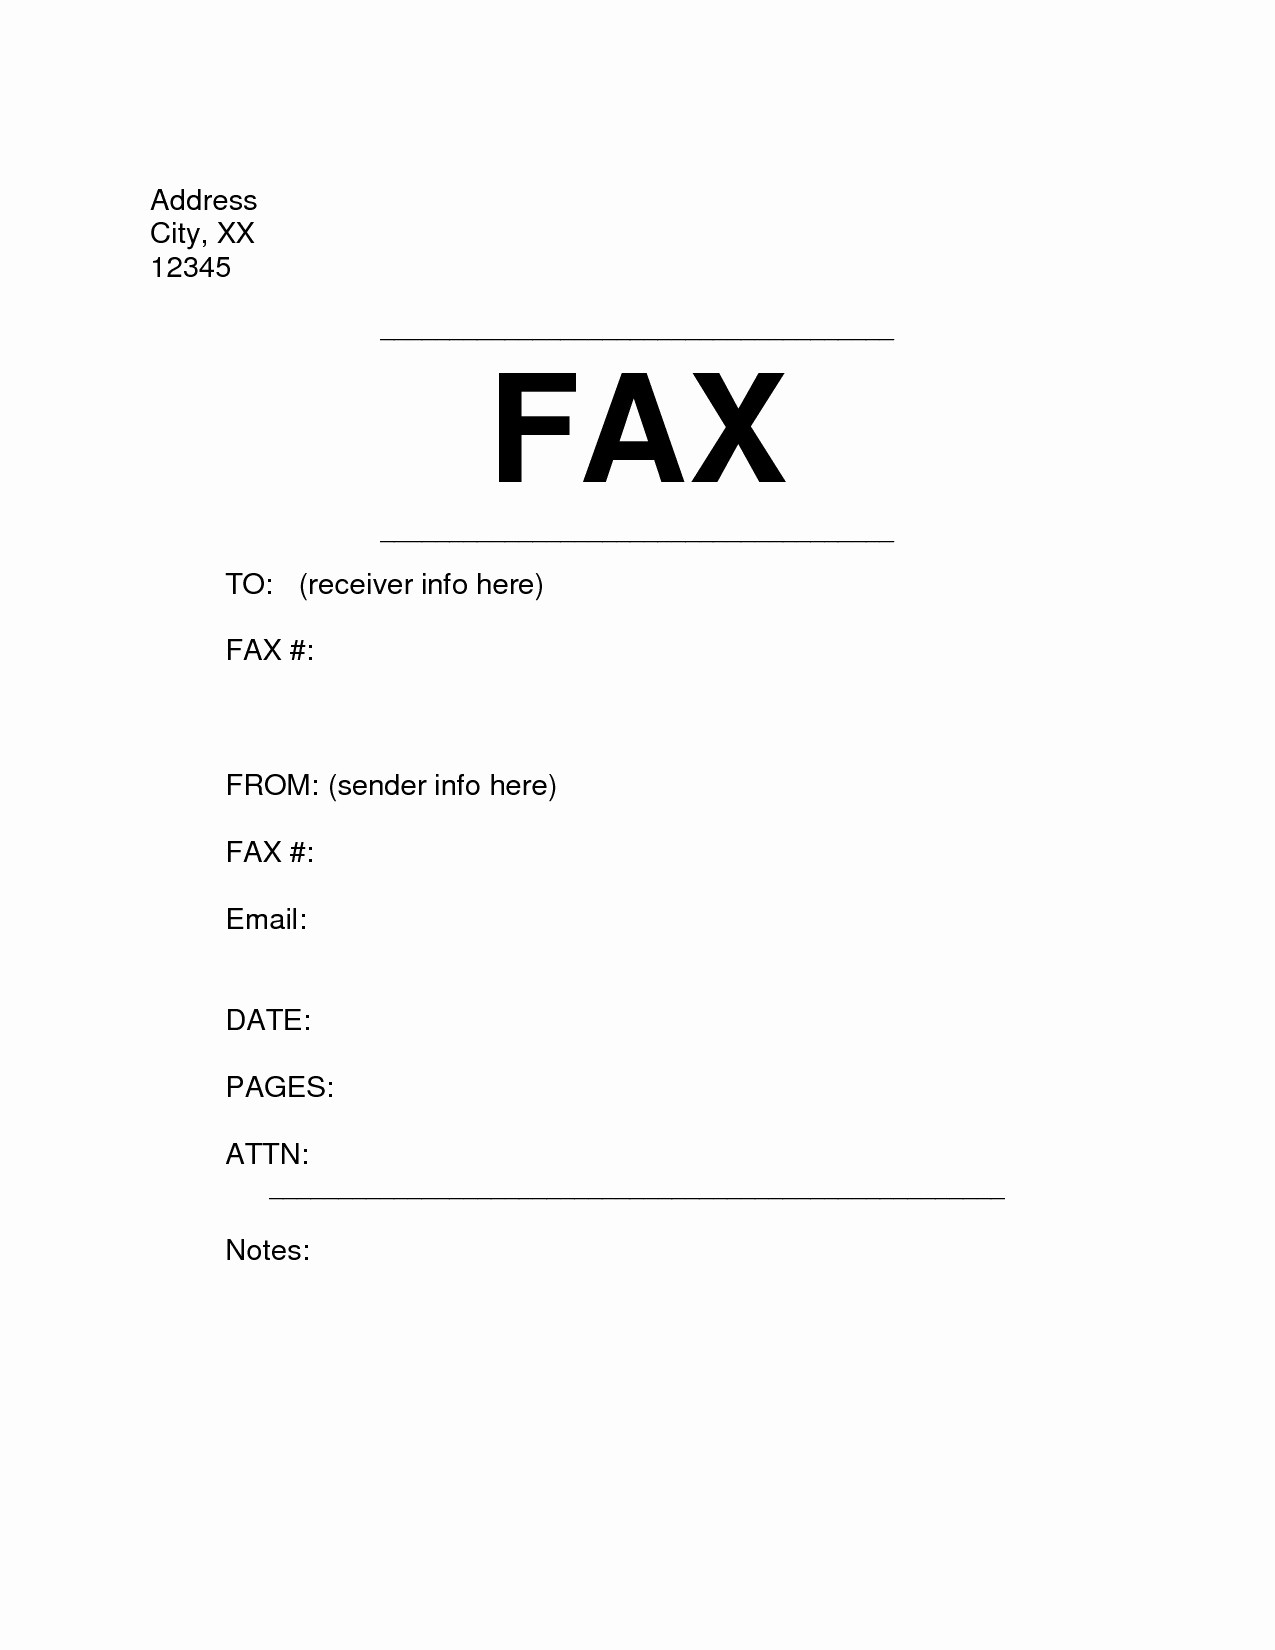 Make A Fax Cover Sheet Fresh Microsoft Fice Fax Cover Sheet Template